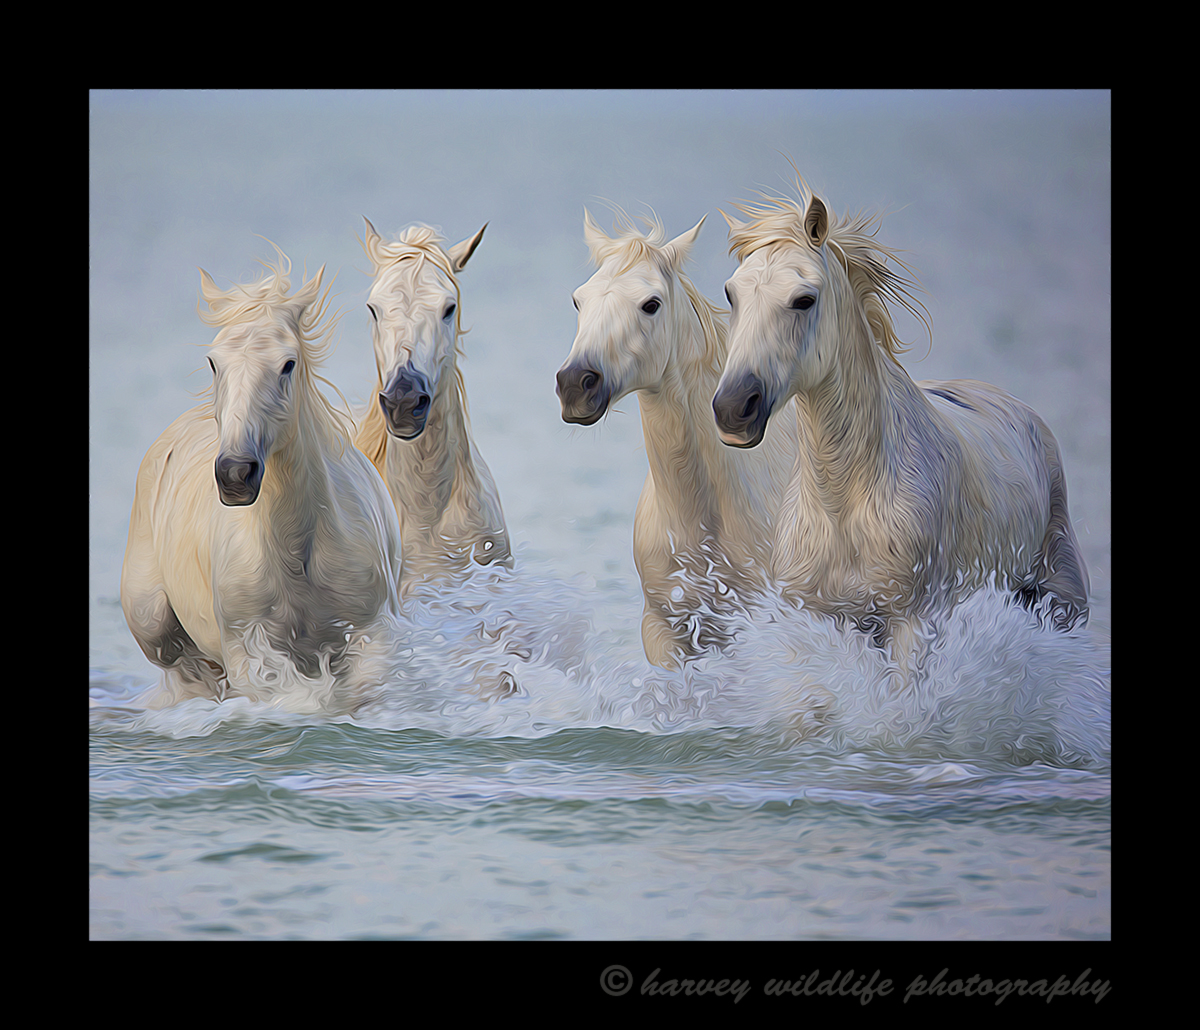 Four Camargue horses running in the delta in Southern France. This version was edited to resemble an oil painting